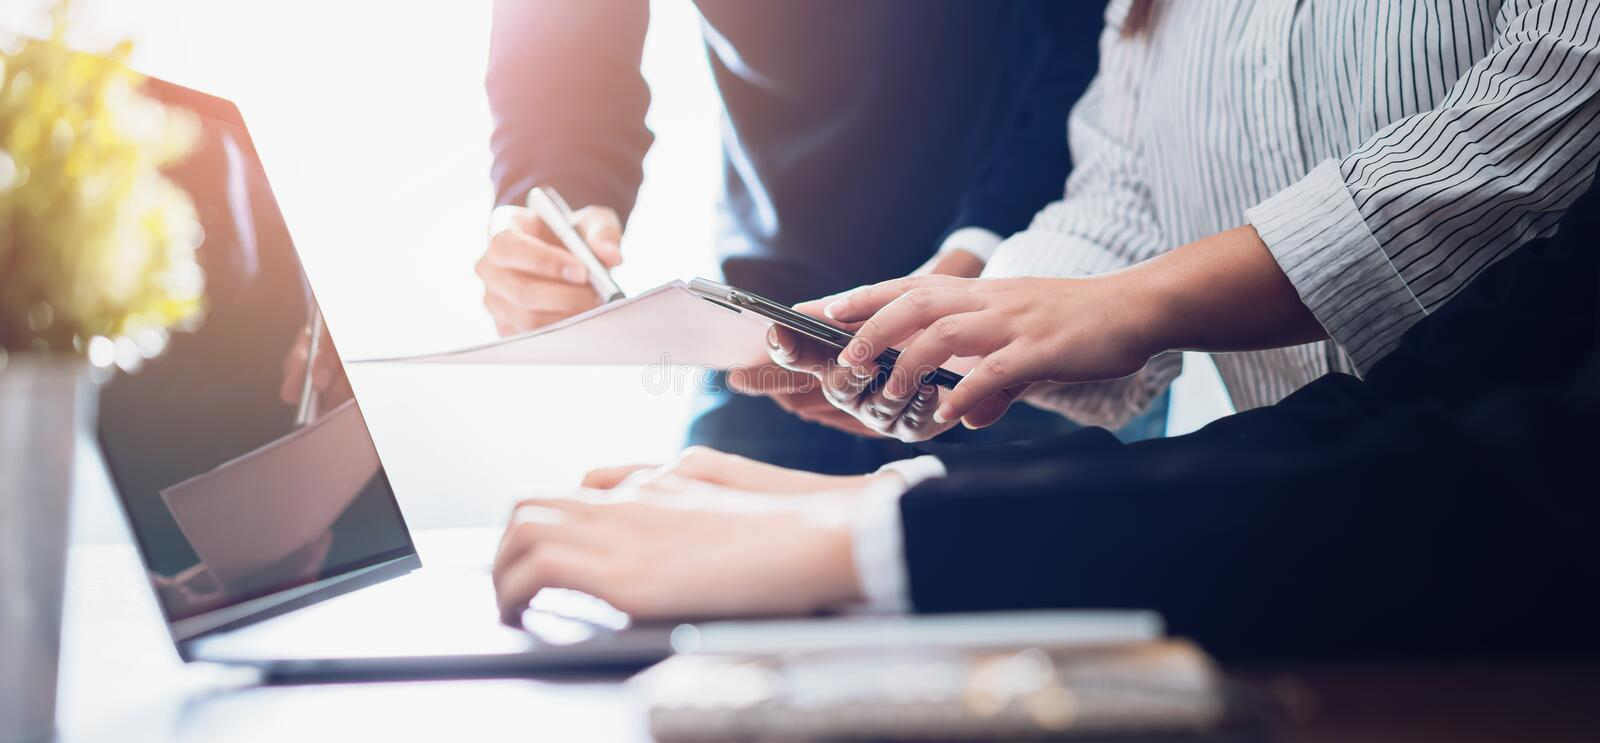 Teamwork working on laptop computer and smartphone in creative office. Successful confident business startup concept. royalty free stock photography